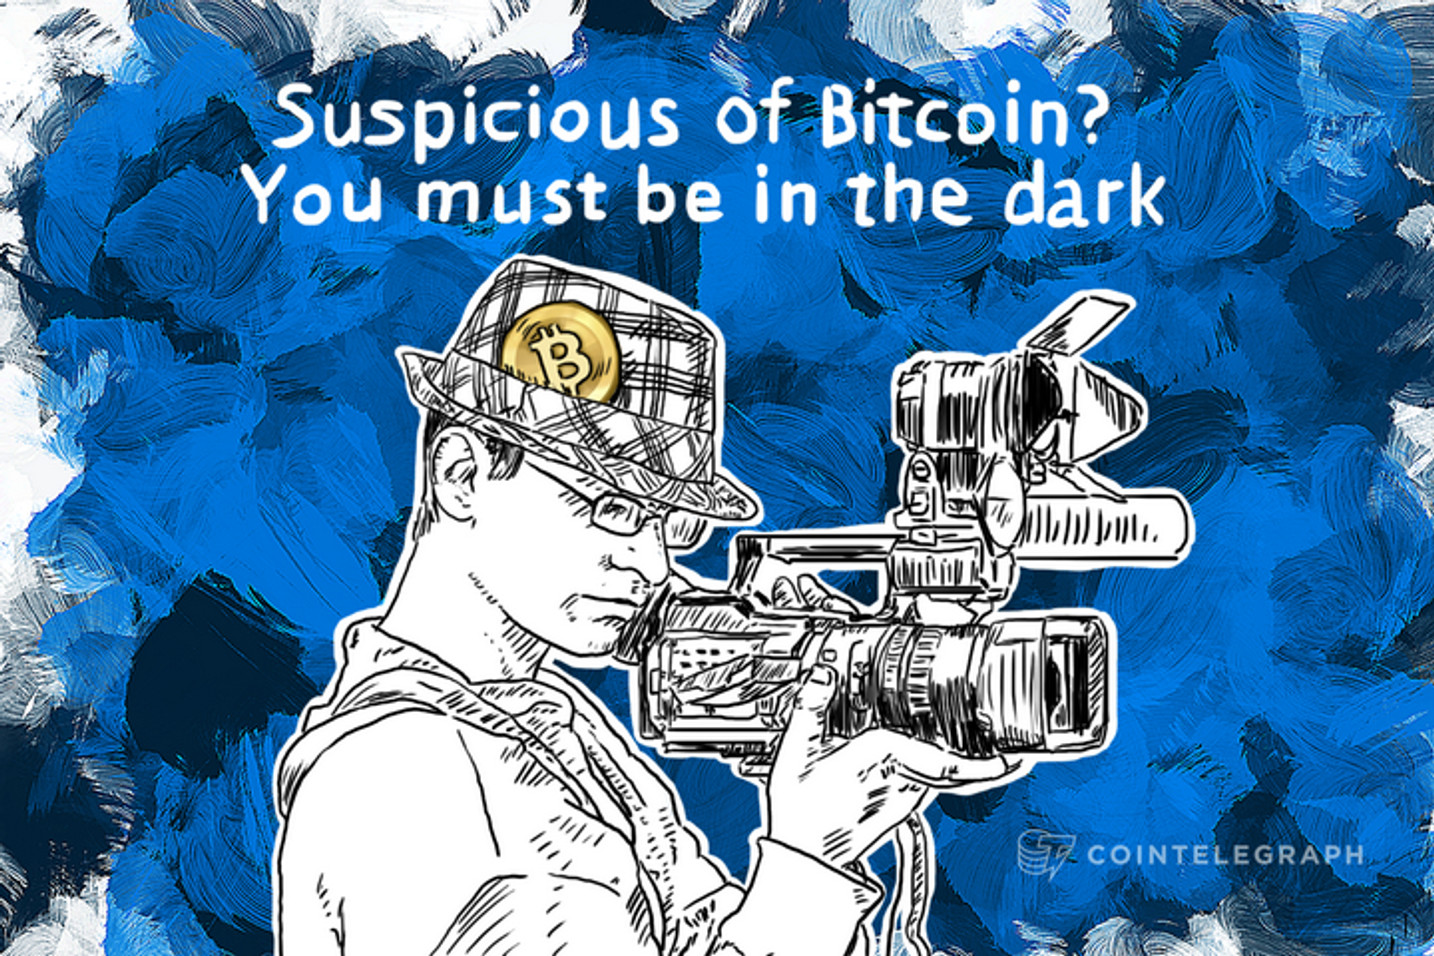 Suspicious of Bitcoin? You must be in the dark